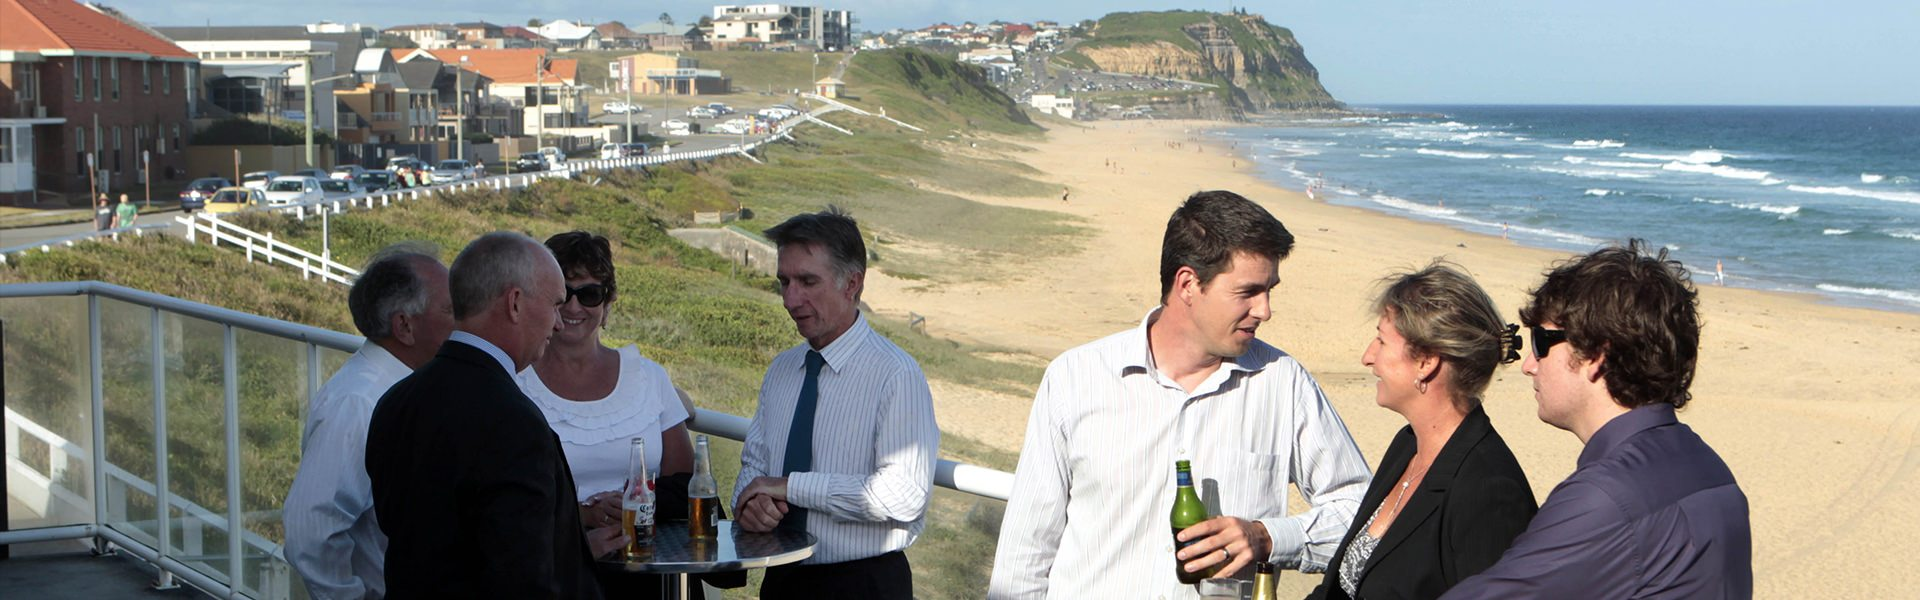 WELCOME TO MEREWETHER FUNCTIONS BY THE BEACH